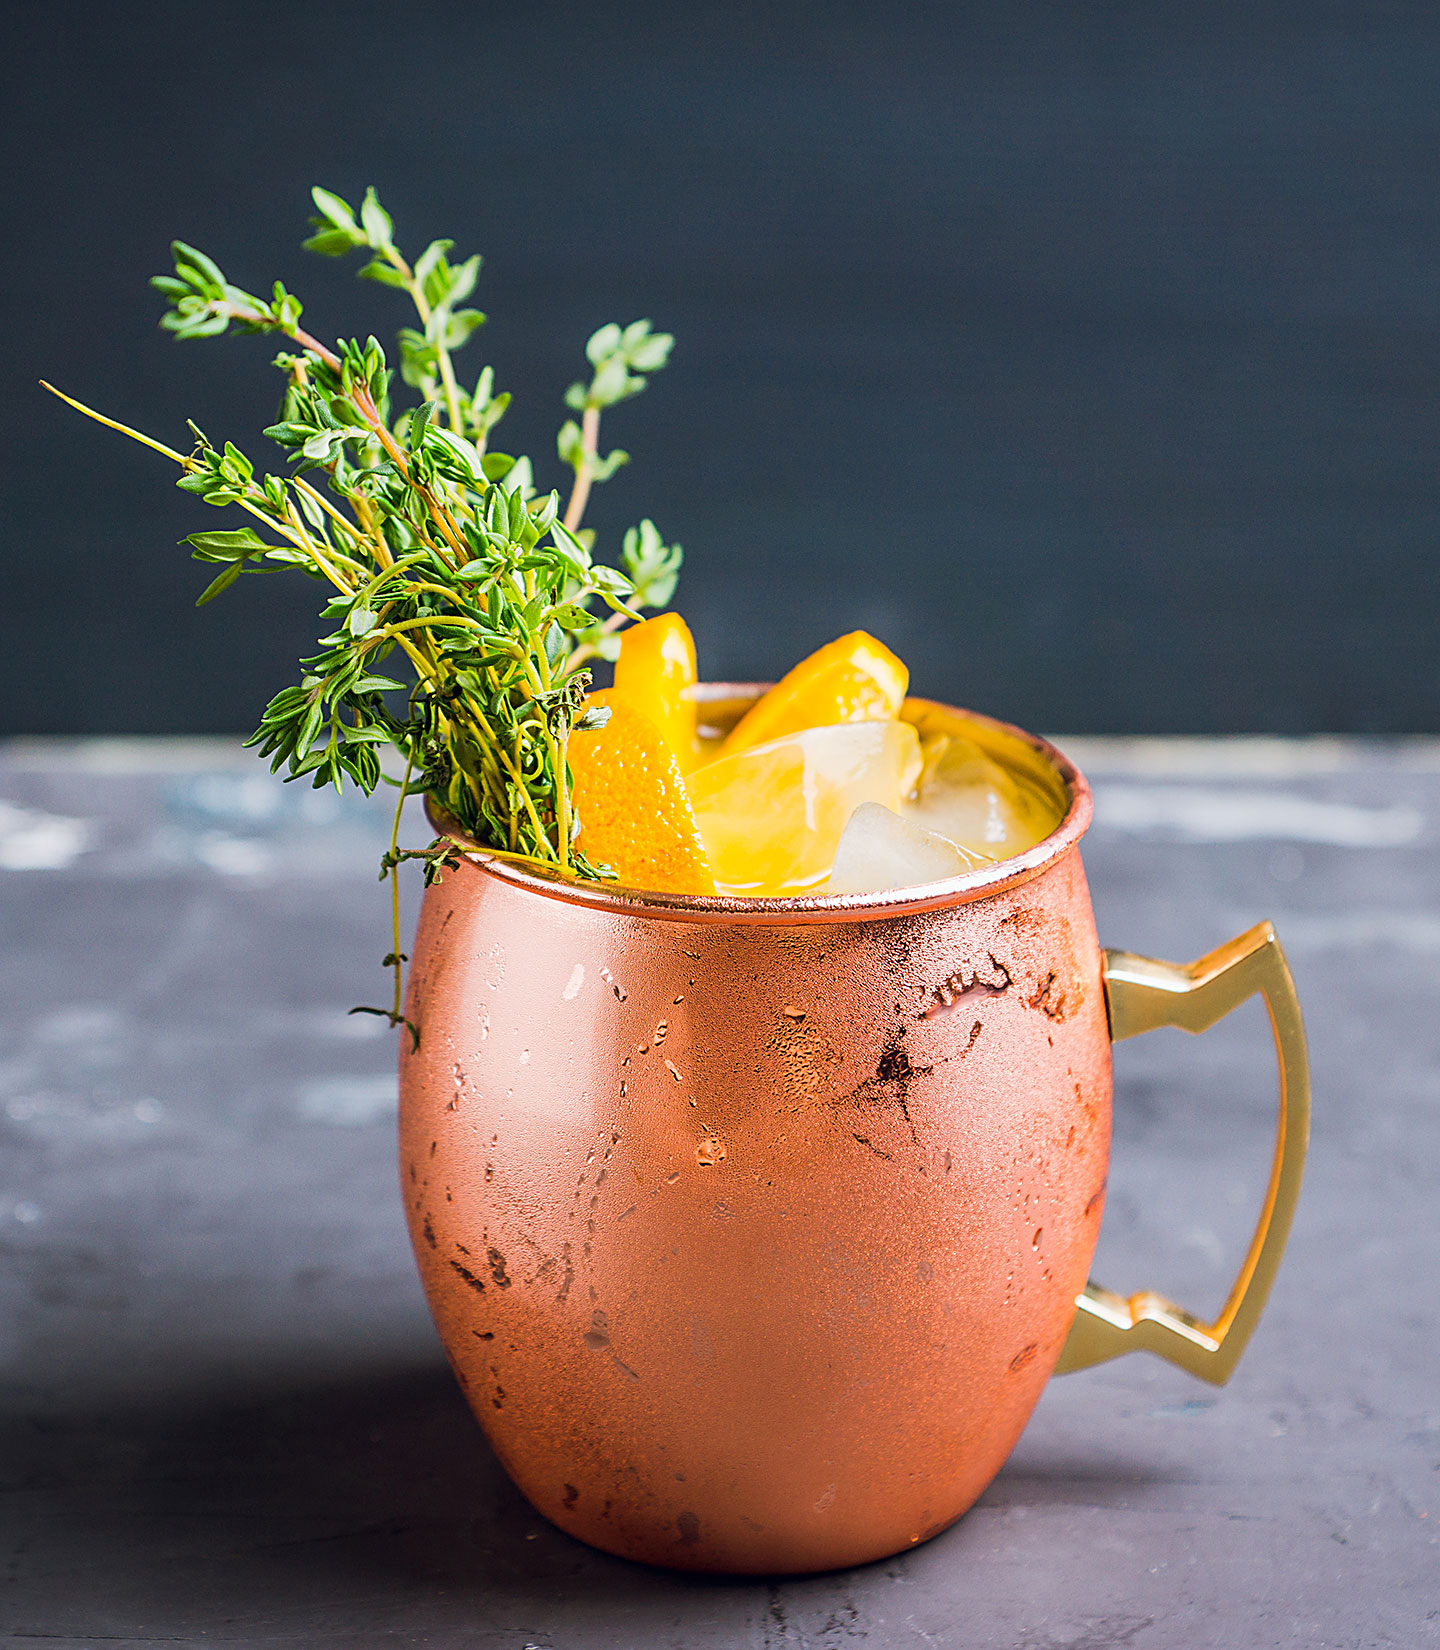 Mandarin Moscow Mule - Summer Vodka Drinks - Cocktail Recipes from Denver Bartenders made with KEEL Vodka